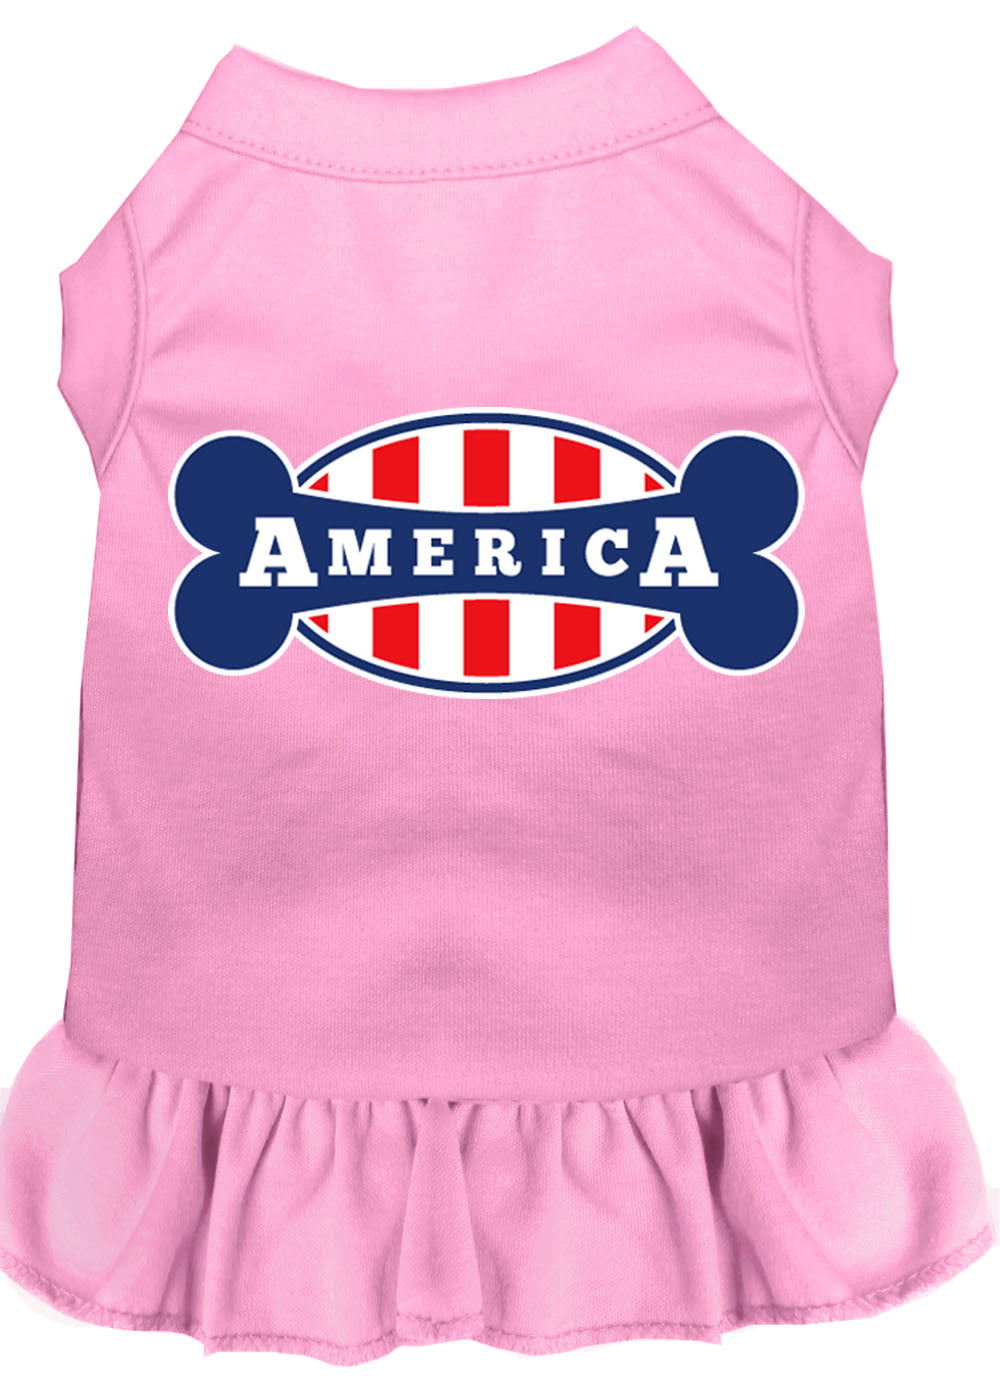 Bonely In America Screen Print Dress Light Pink